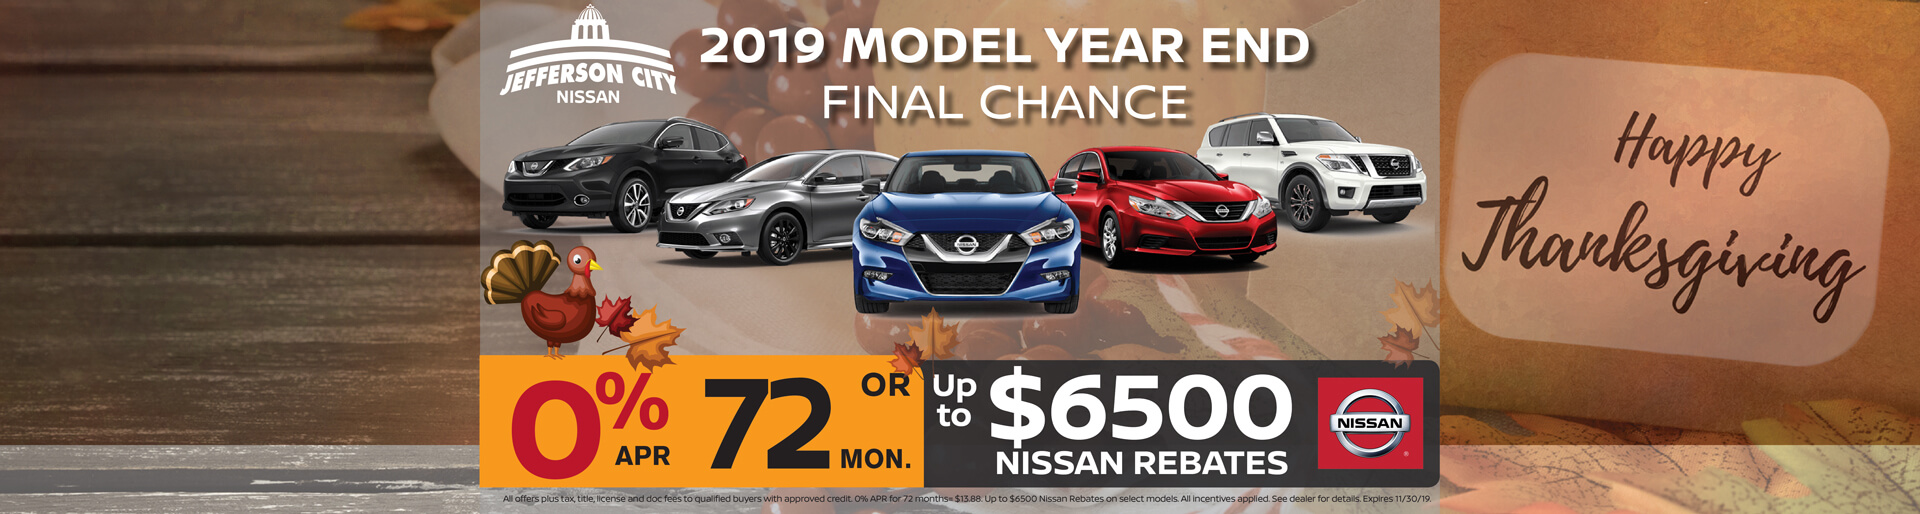 Get 0% APR for 72 mos. or up to $6,500 in Nissan Rebates on 2019 models